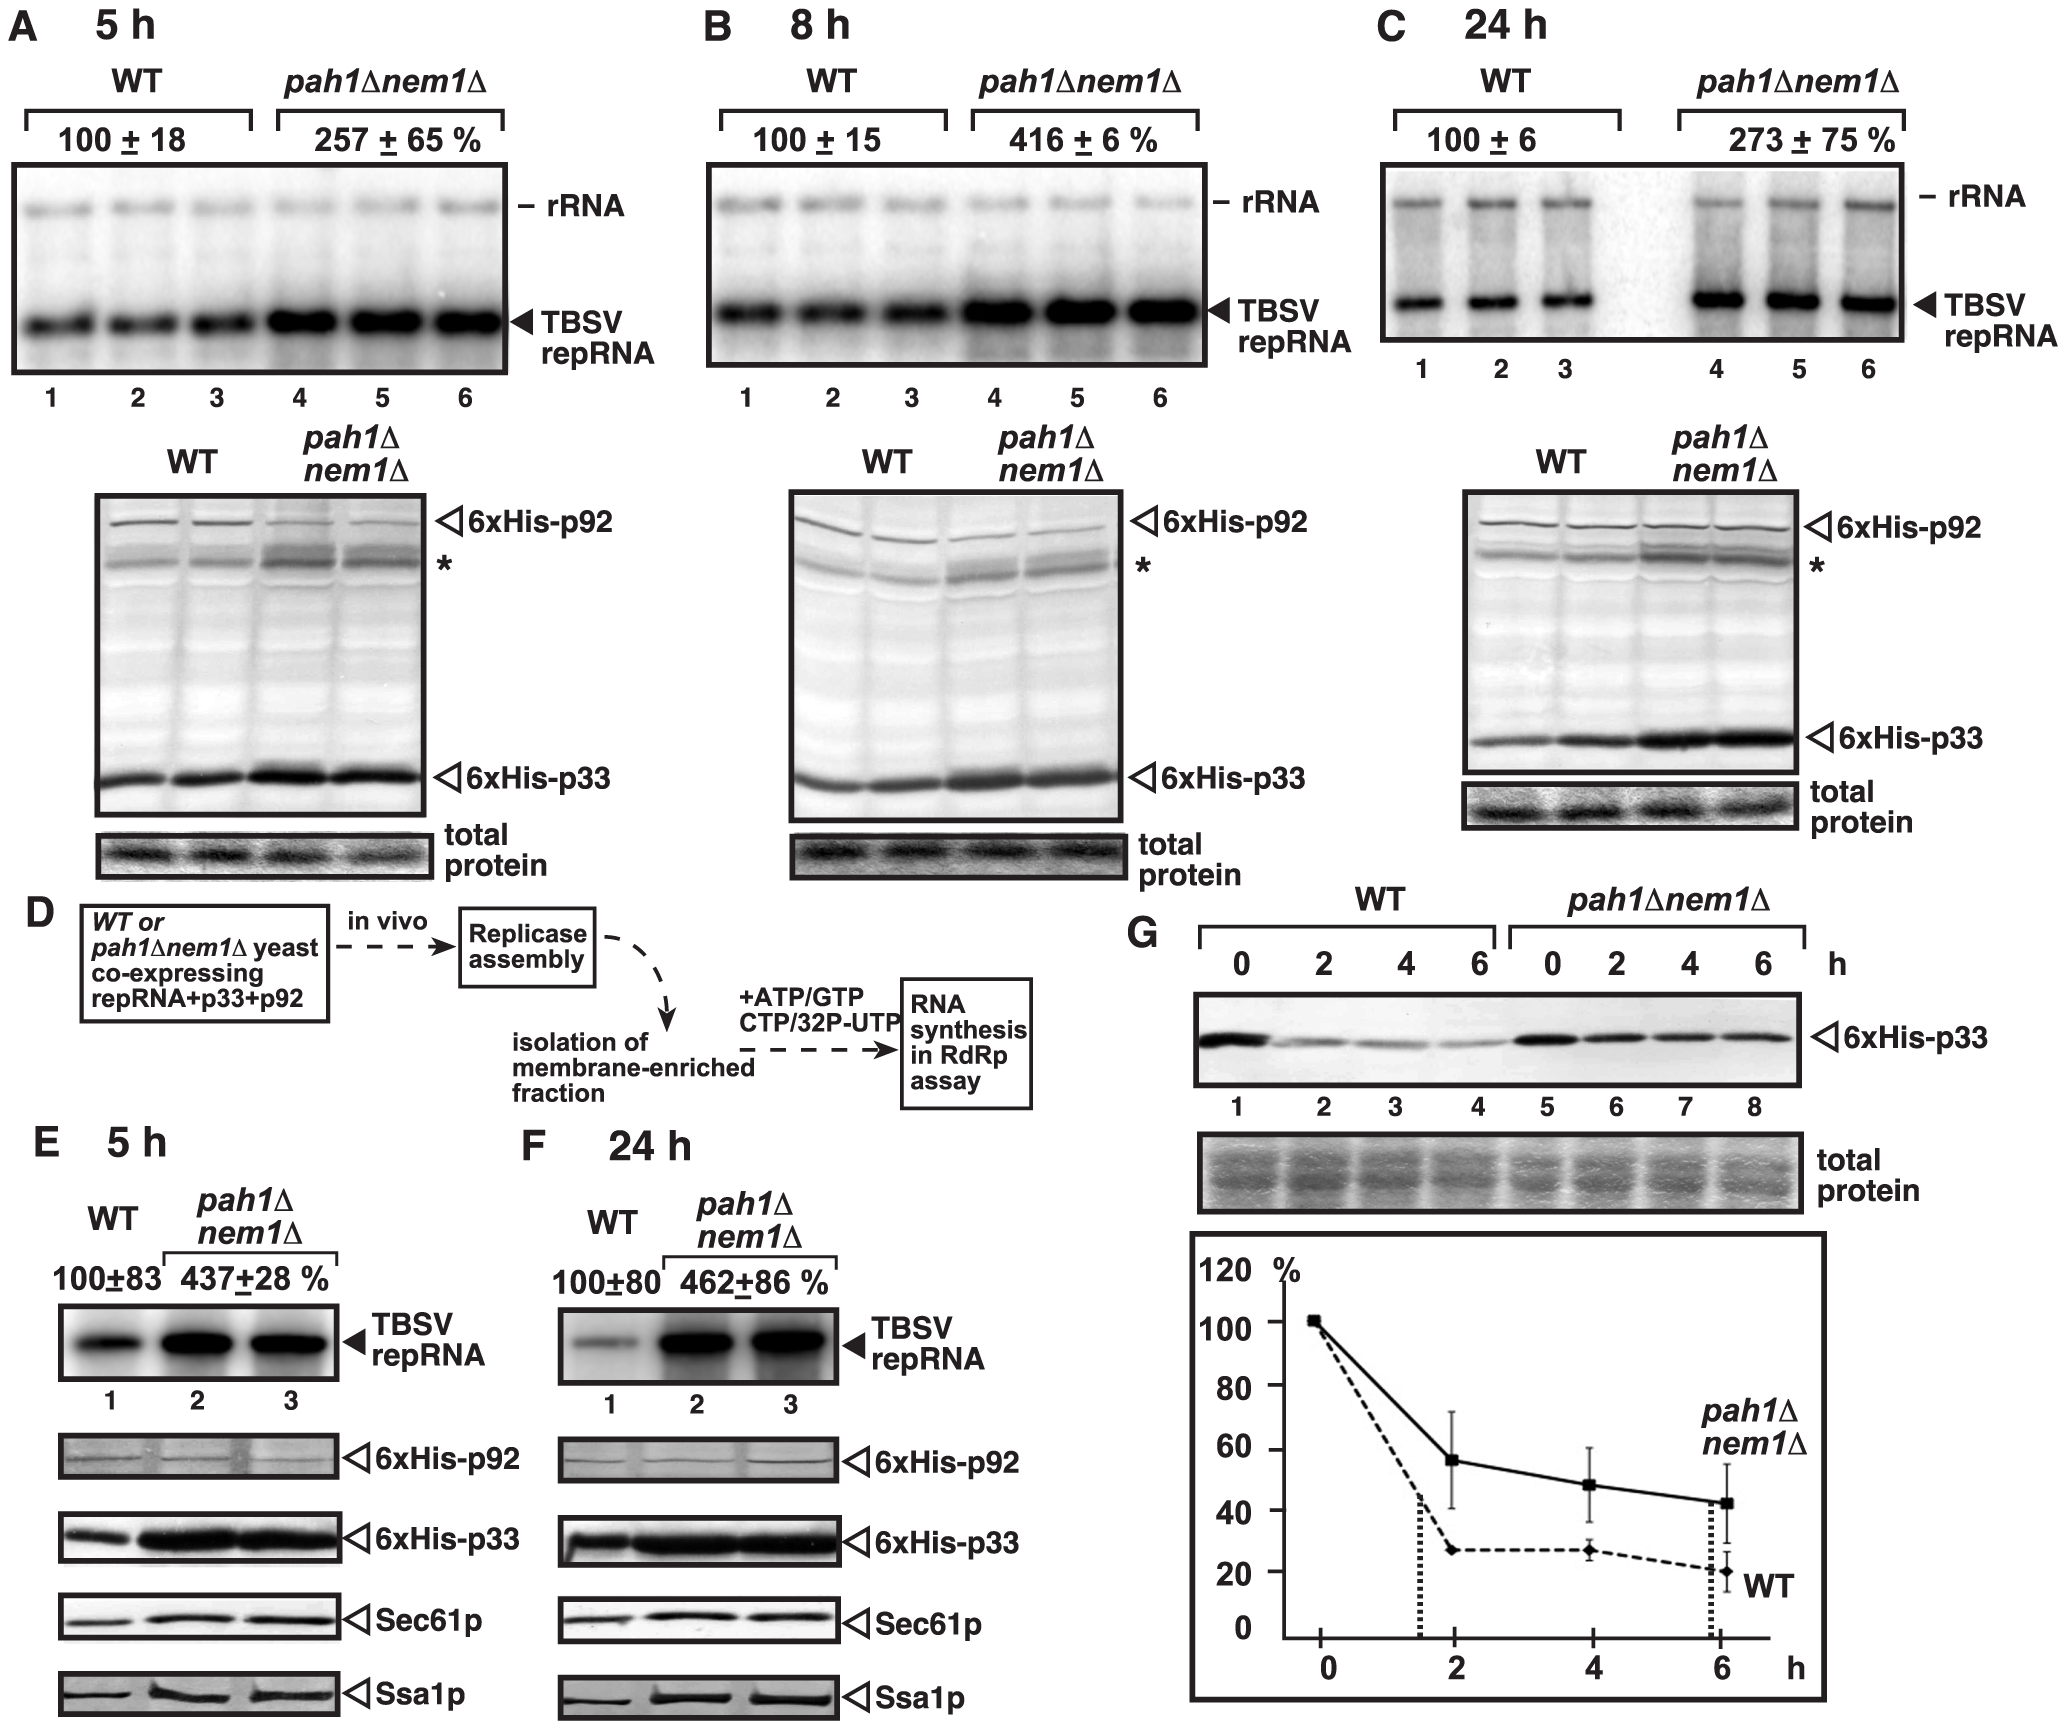 Increased TBSV repRNA replication and enhanced p33 stability in yeast lacking Pah1p.